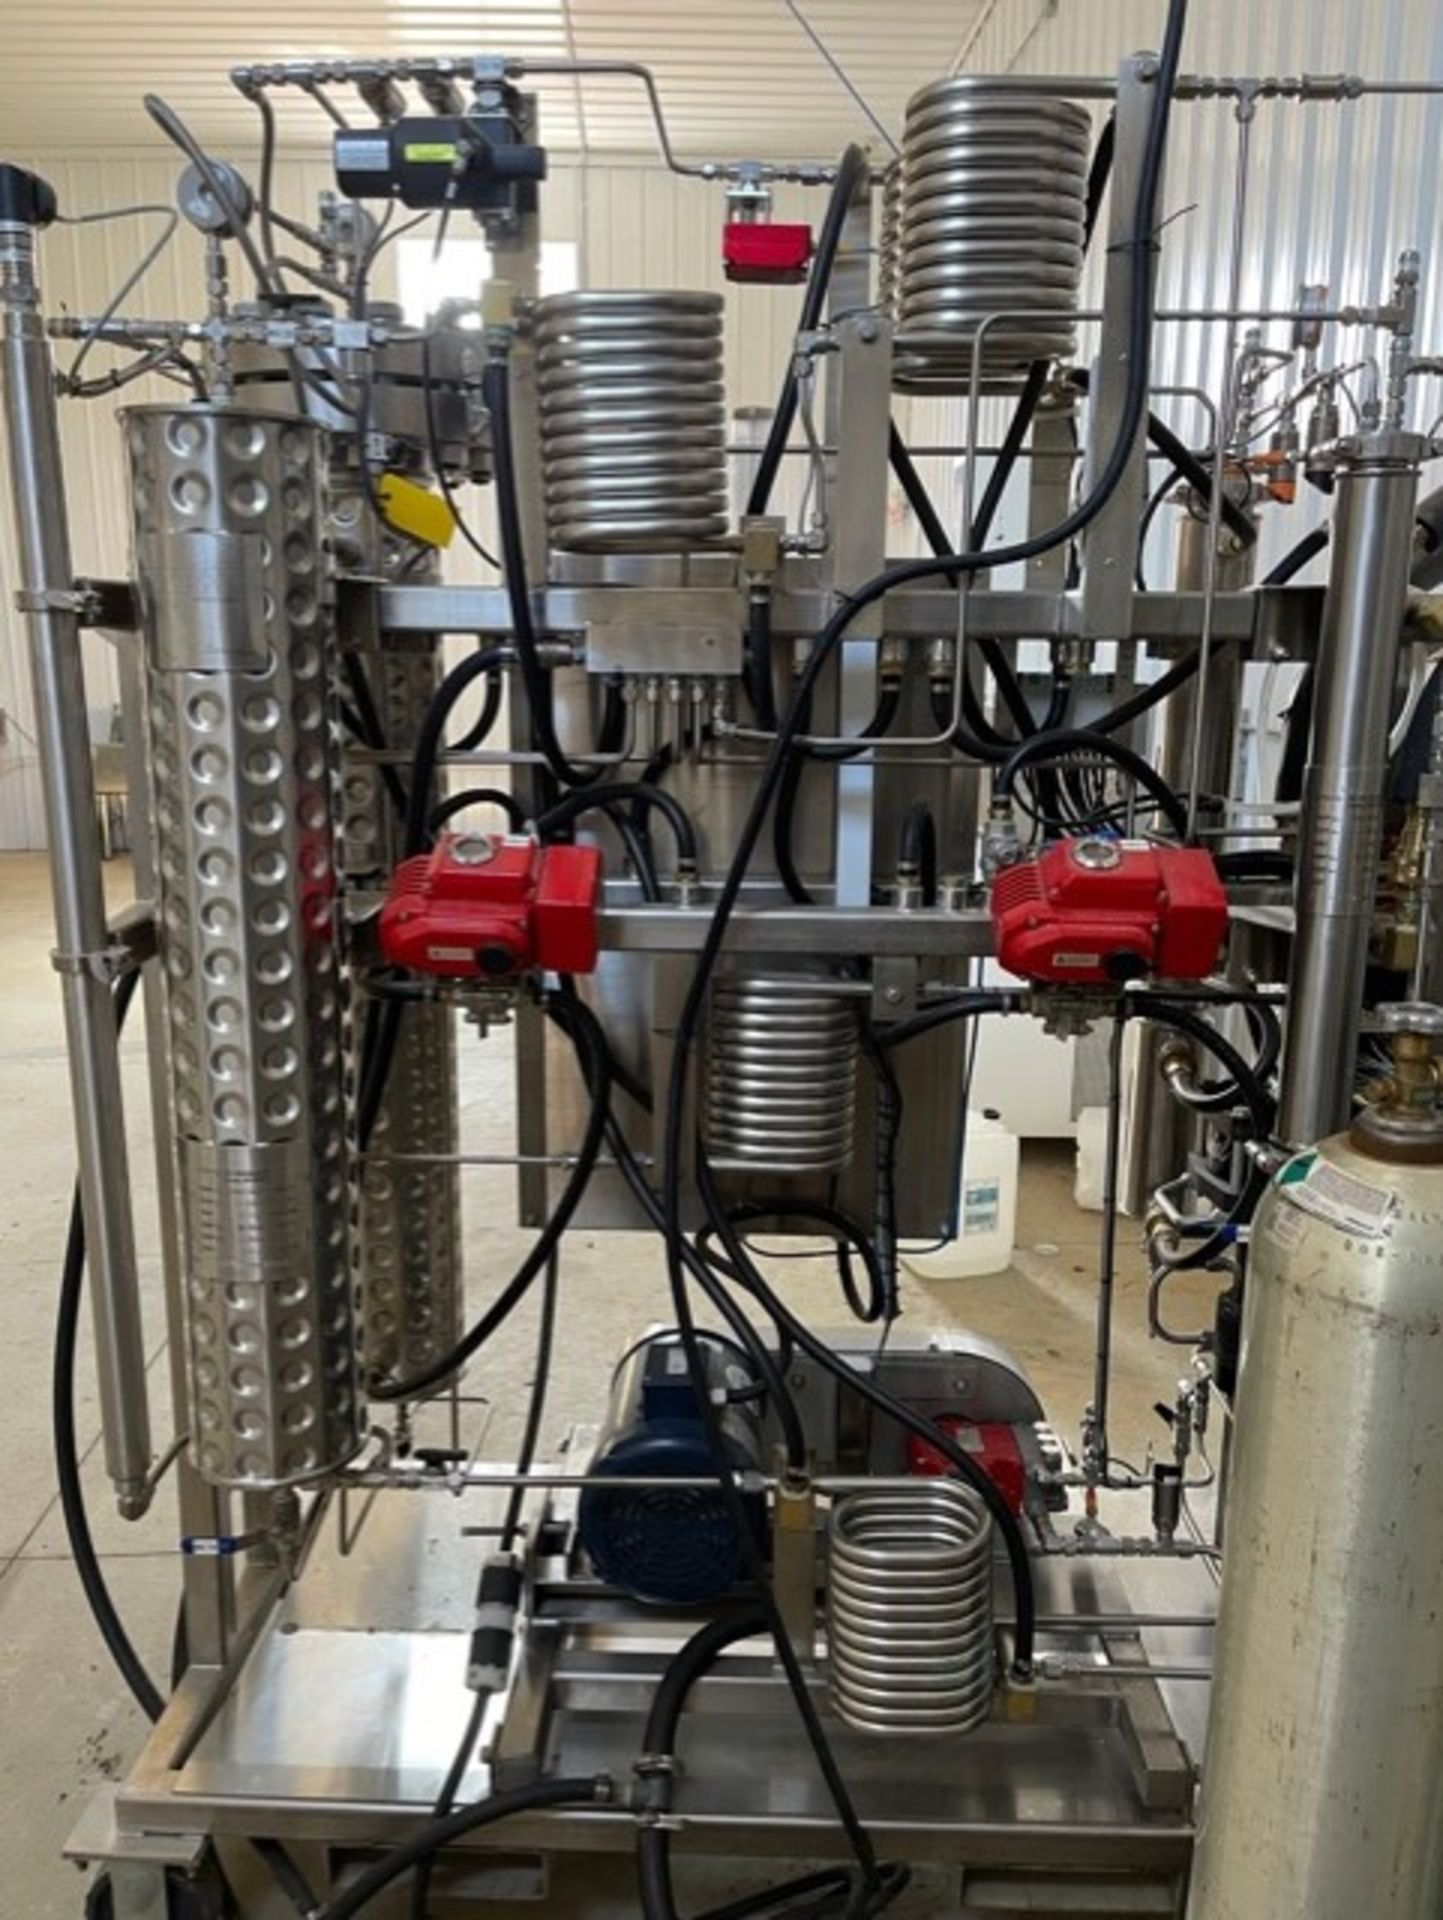 Used - MRX Supercritical CO2 Extractor Complete System. See details in description full inventory - Image 3 of 29